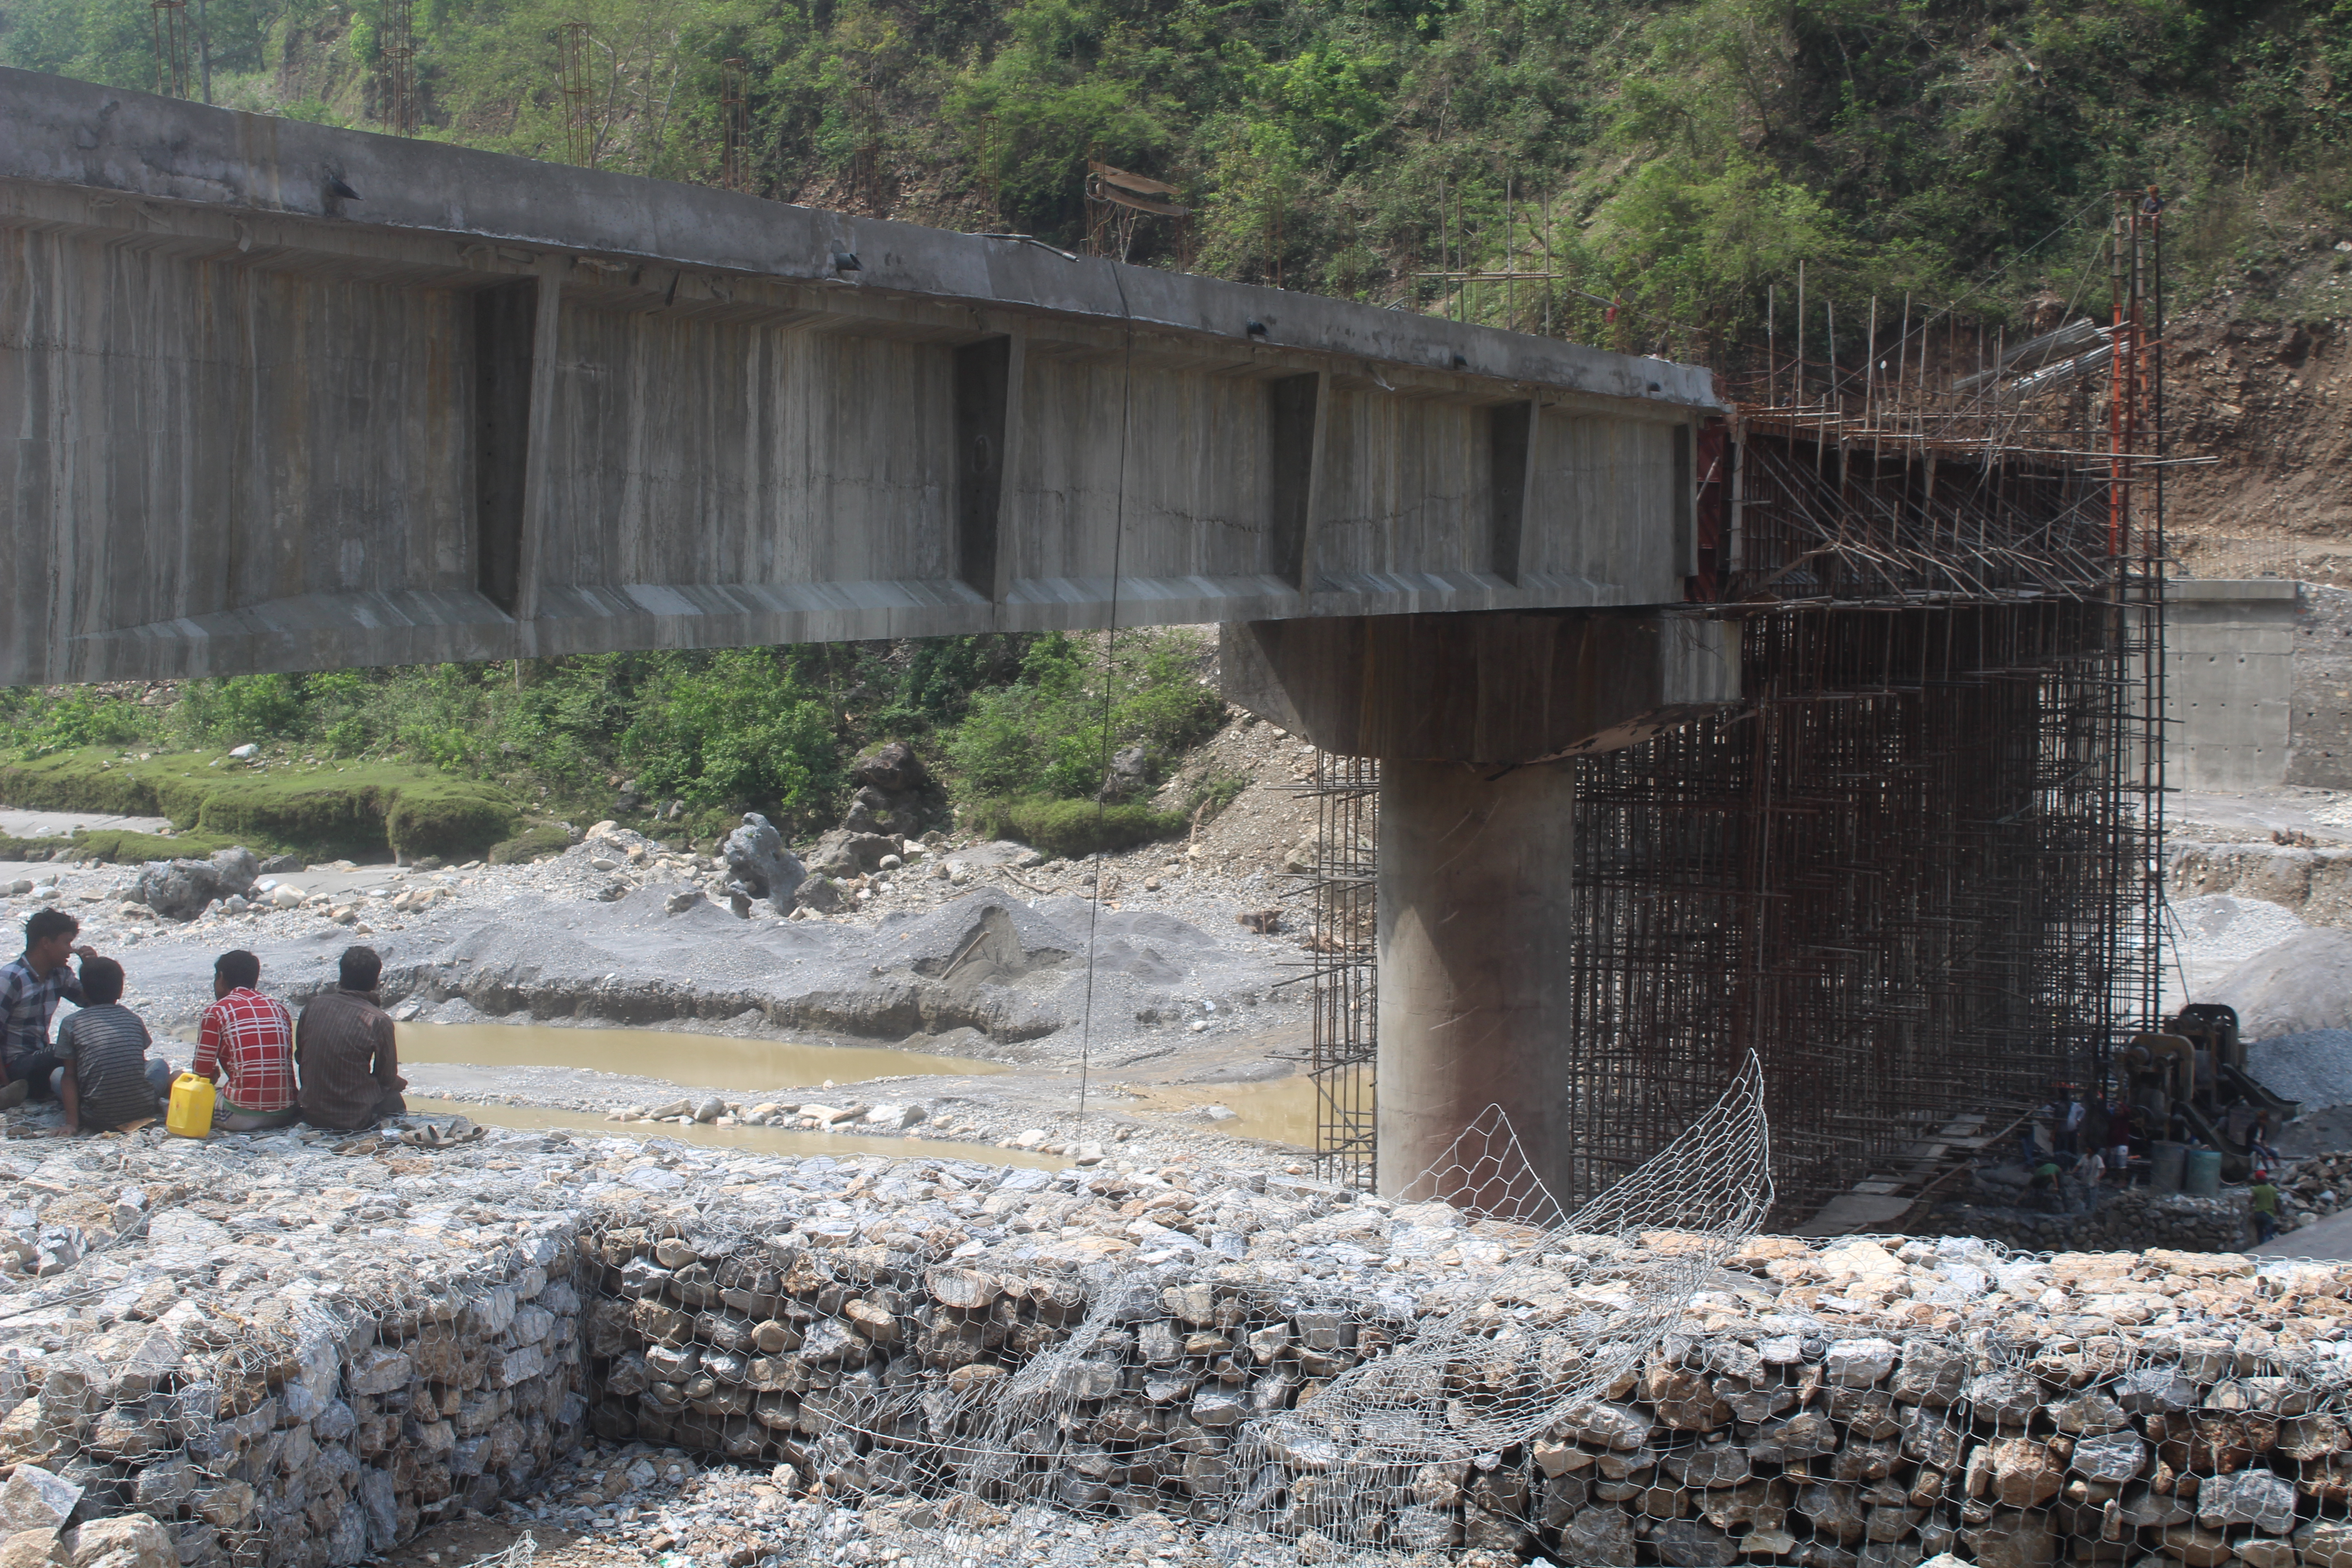 A 105 metre long under construction motor-able bridge over Seti river in Tanahun district as seen on Saturday, May 5, 2018. Photo: Madan Wagle